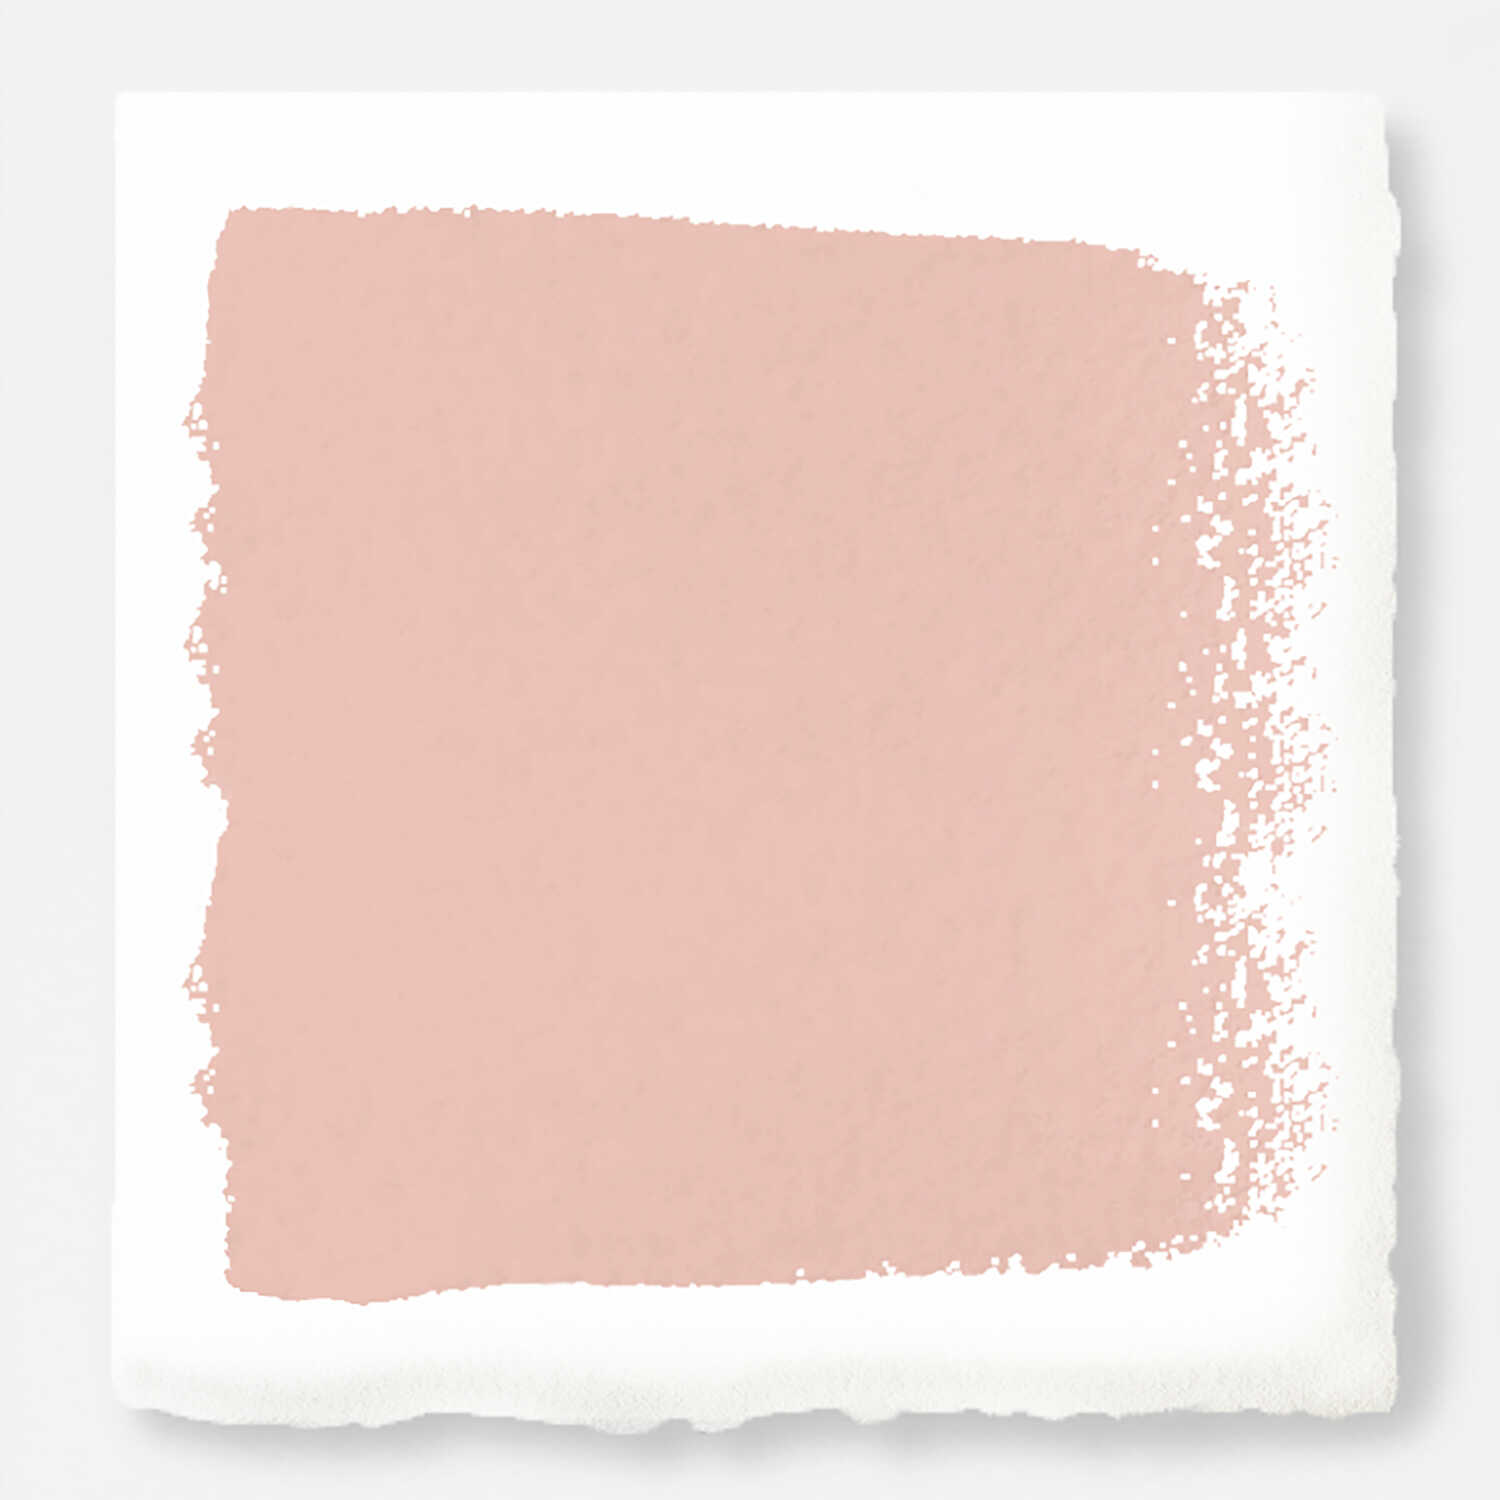 Magnolia Home  Flat  Cabbage Rose  Exterior Paint and Primer  1 gal.